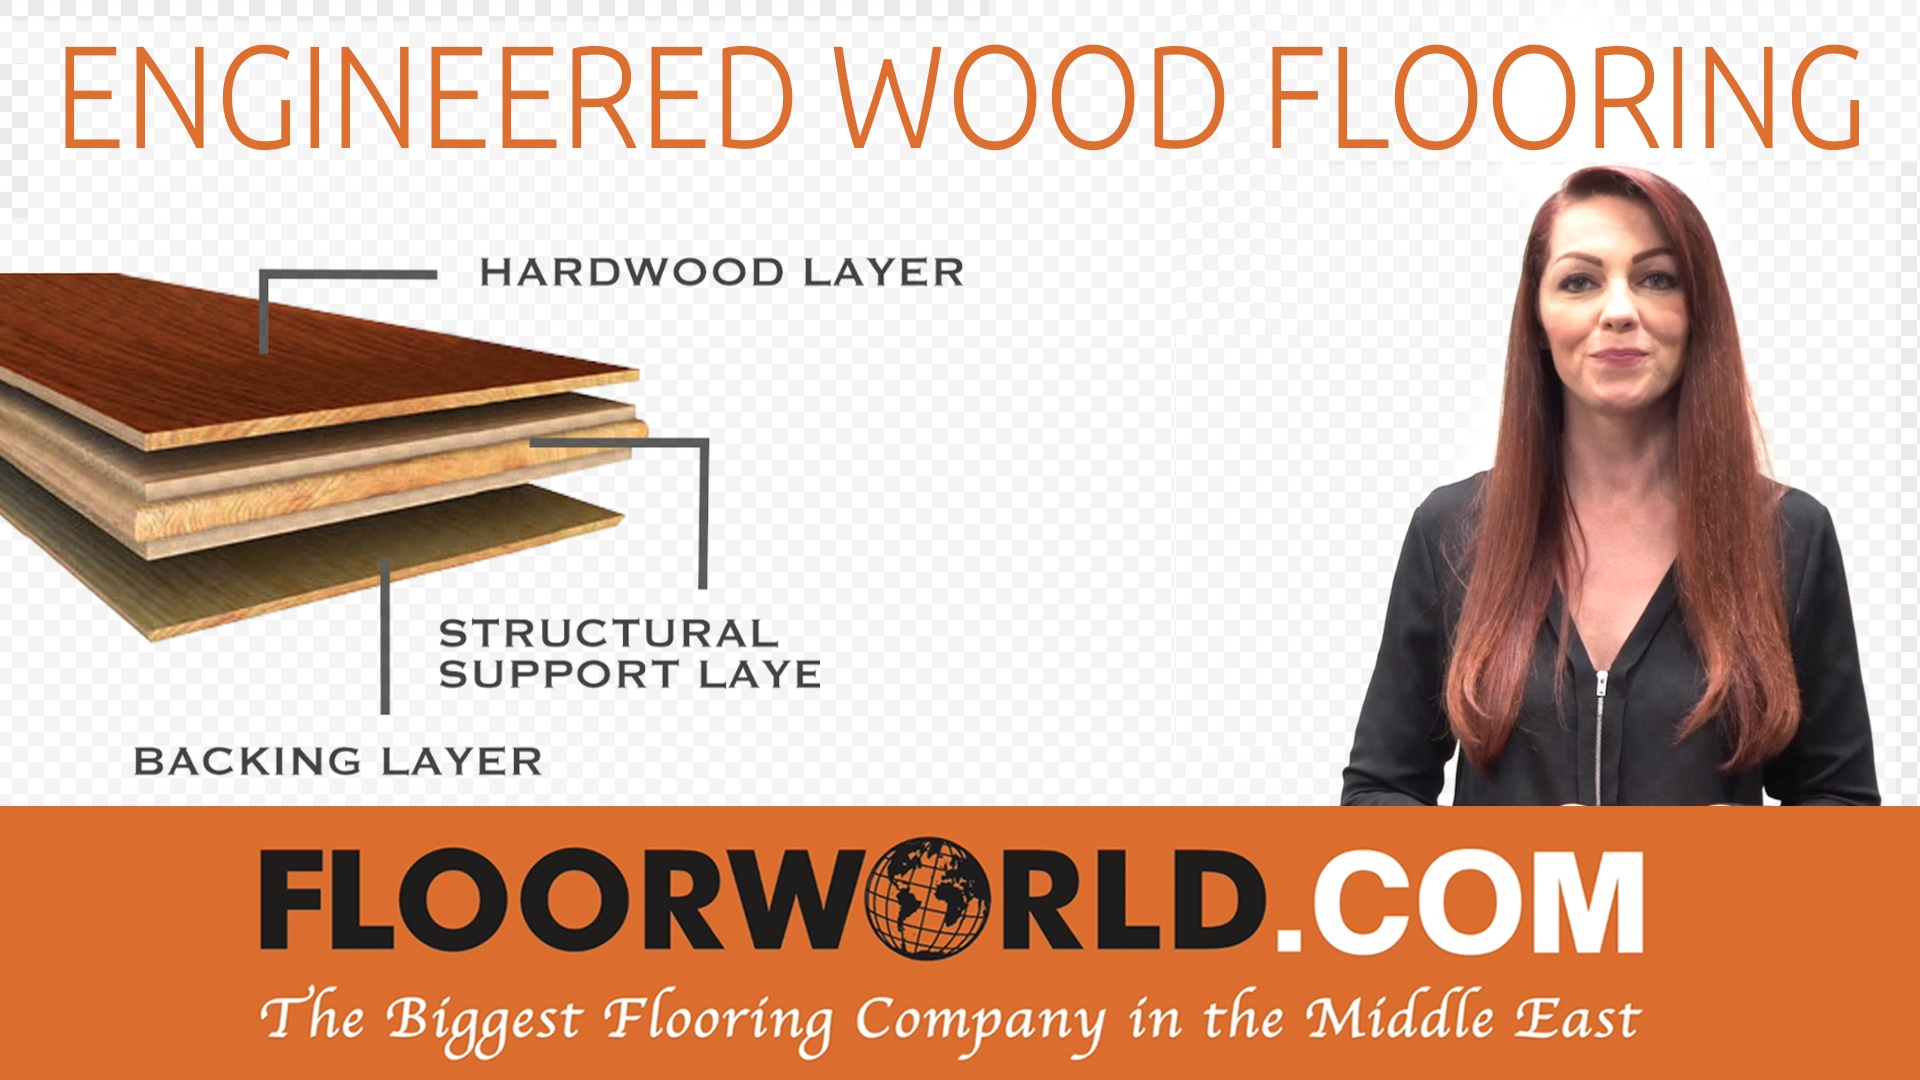 What is Engineered Wood Flooring?